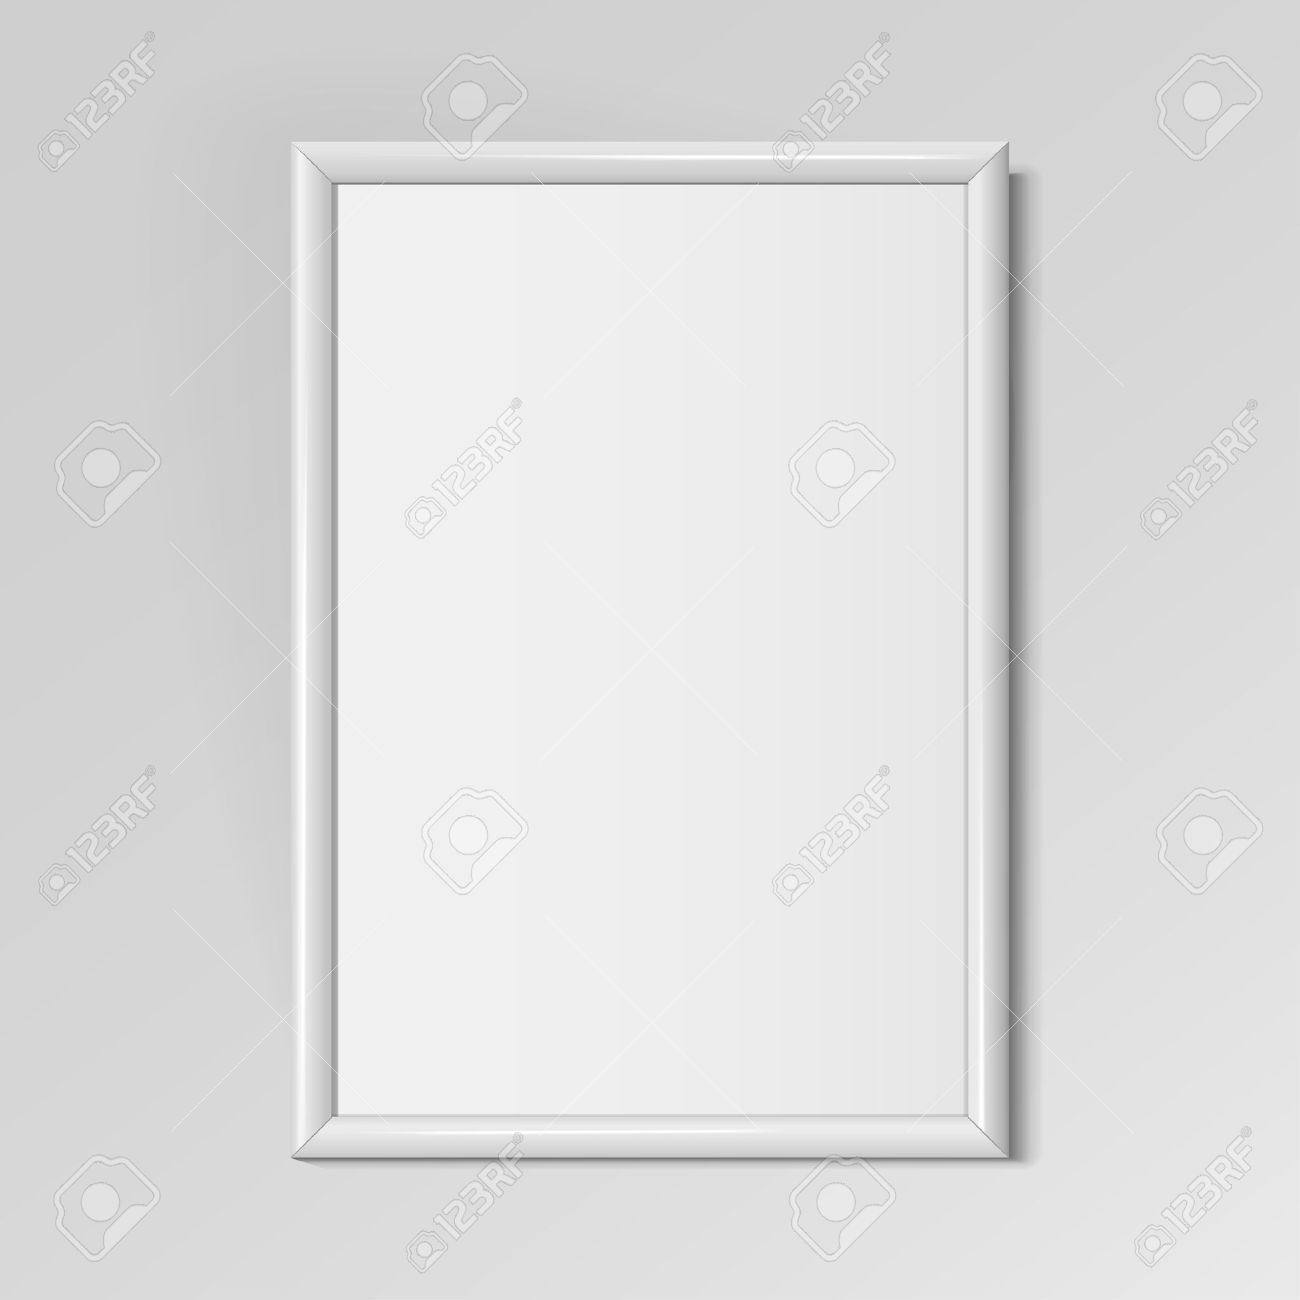 Realistic White Vertical Frame For Paintings Or Photographs Hanging ...